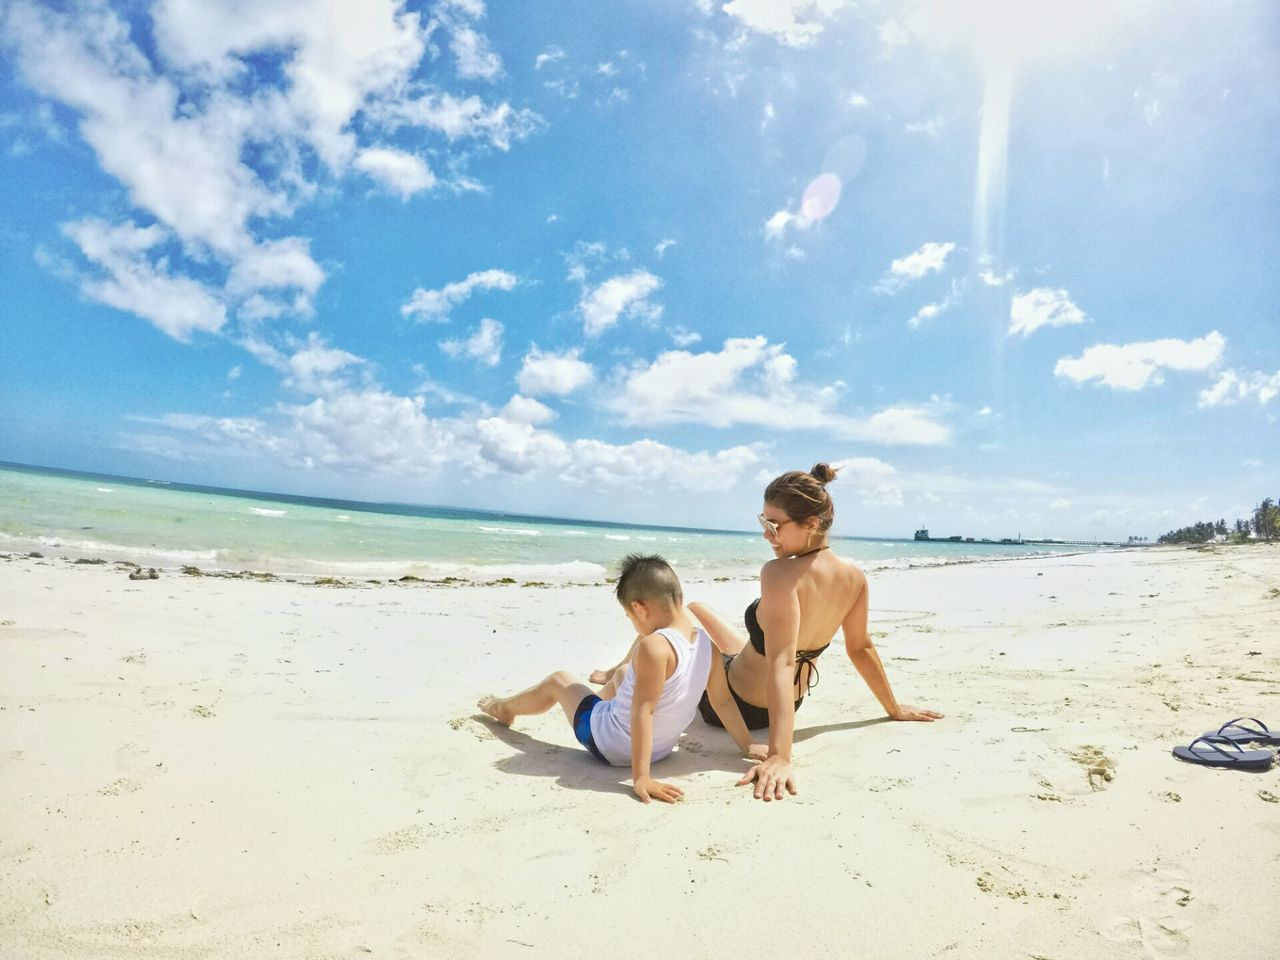 Beach Vacations Sea Child Togetherness Bonding Sand Fun Sky Blue Beachphotography MyEyemPhoto Beauty Is Everywhere  Philippine Islands Philippinesbeaches Beauty In Nature Philippines Sand & Sea Cheerful Motherandson  Two People Enjoylife Beauty Is Everywhere